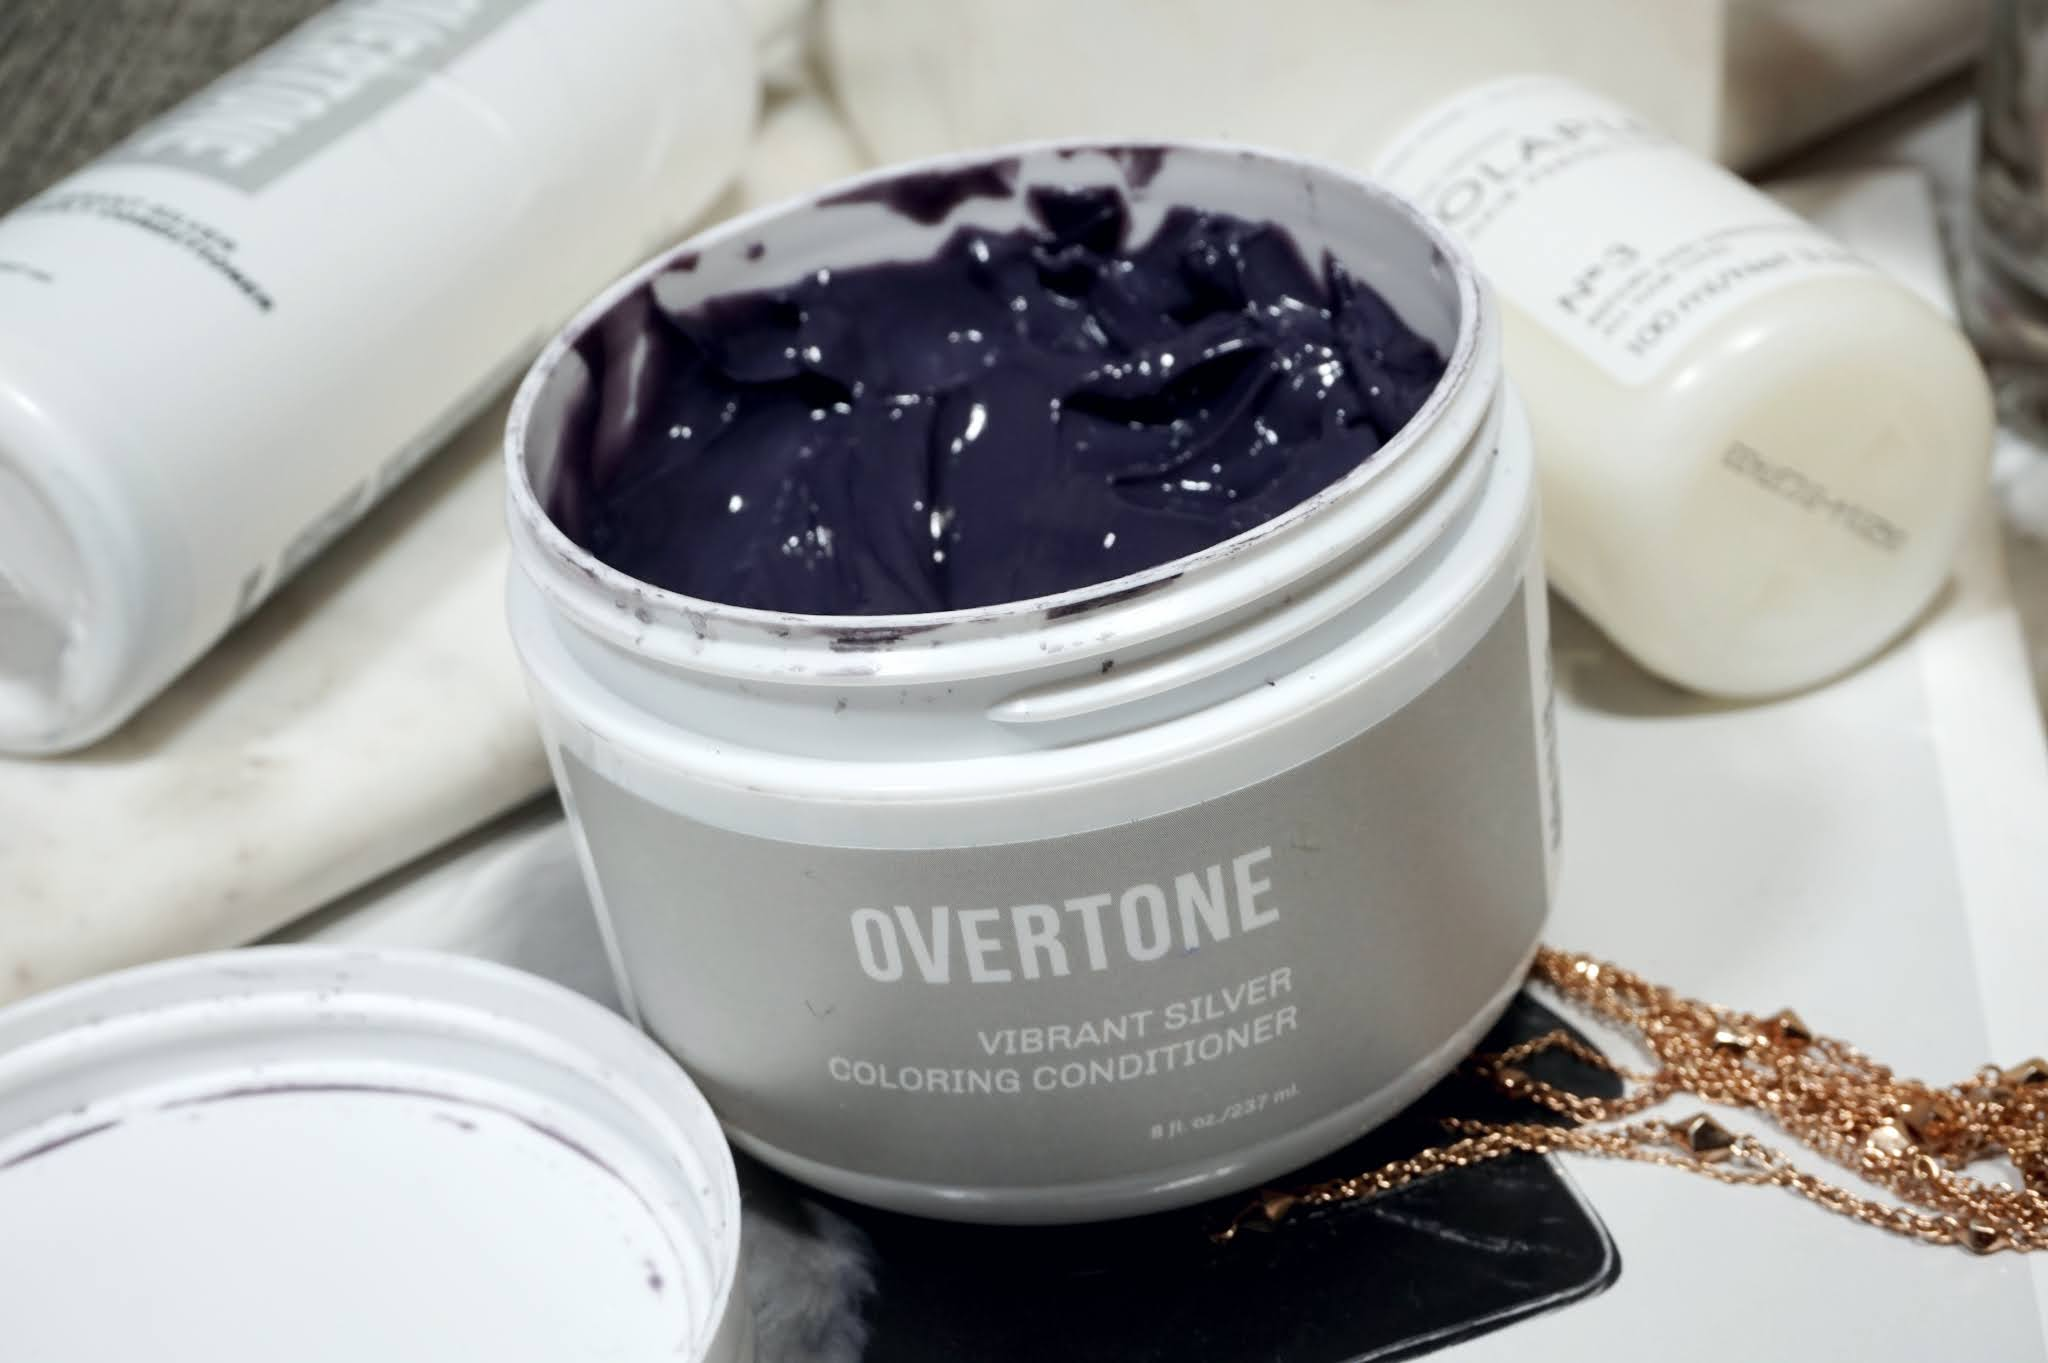 Overtone - Vibrant Silver Color Conditioner & Daily Conditioner